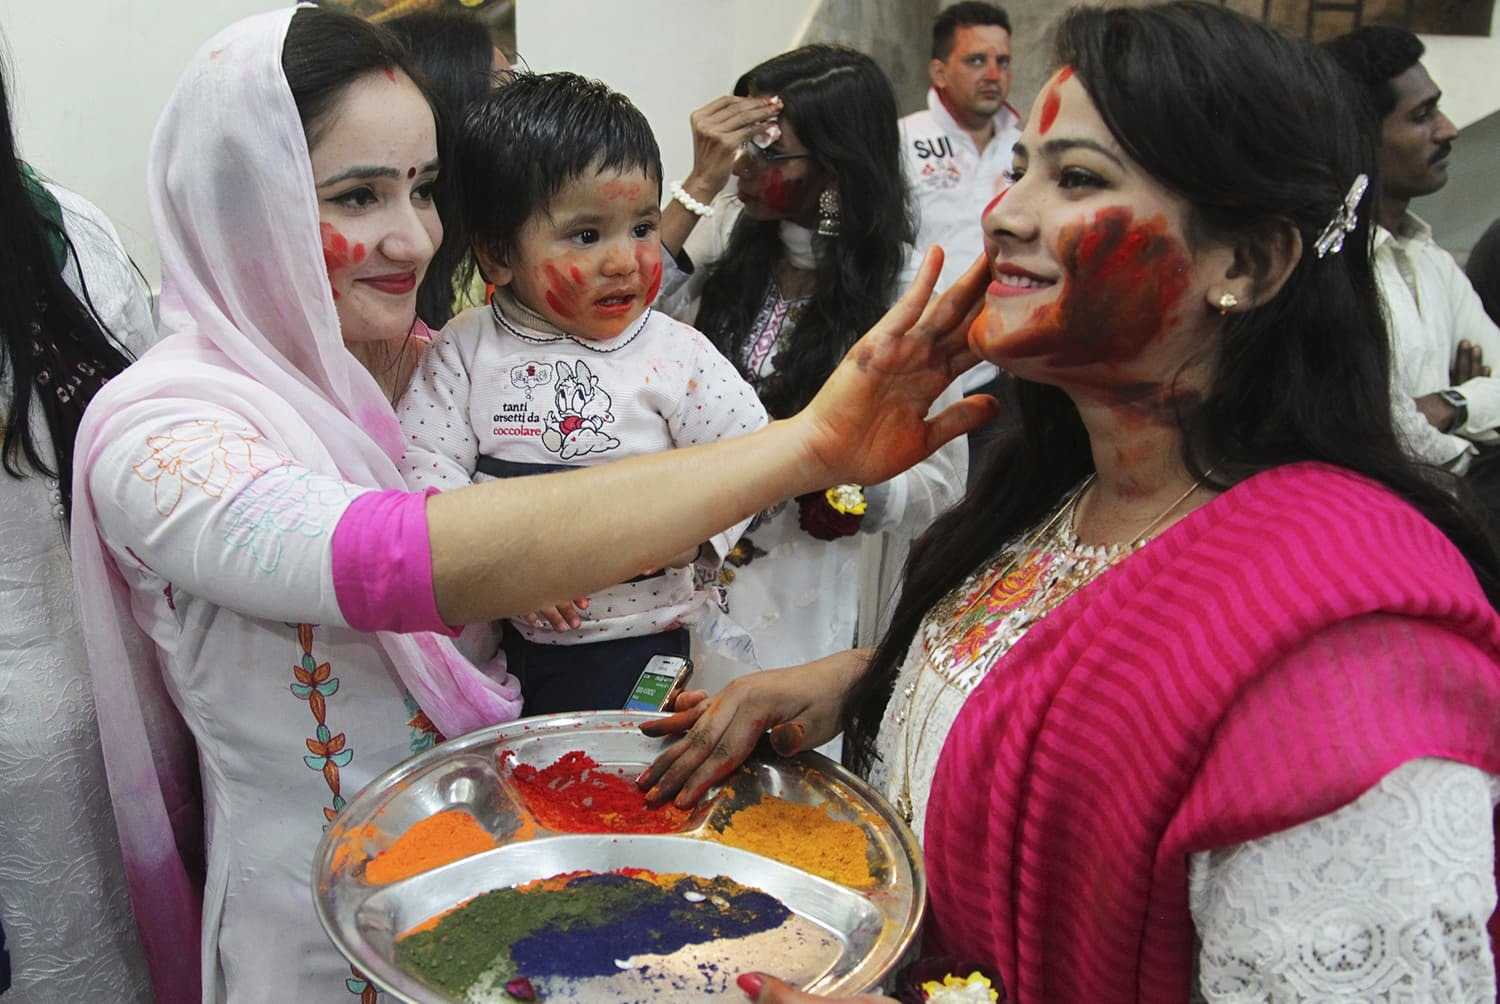 This file photo shows women from the Hindu community smear each other with color to celebrate Holi, the festival of colors, at a temple in Lahore. — AP